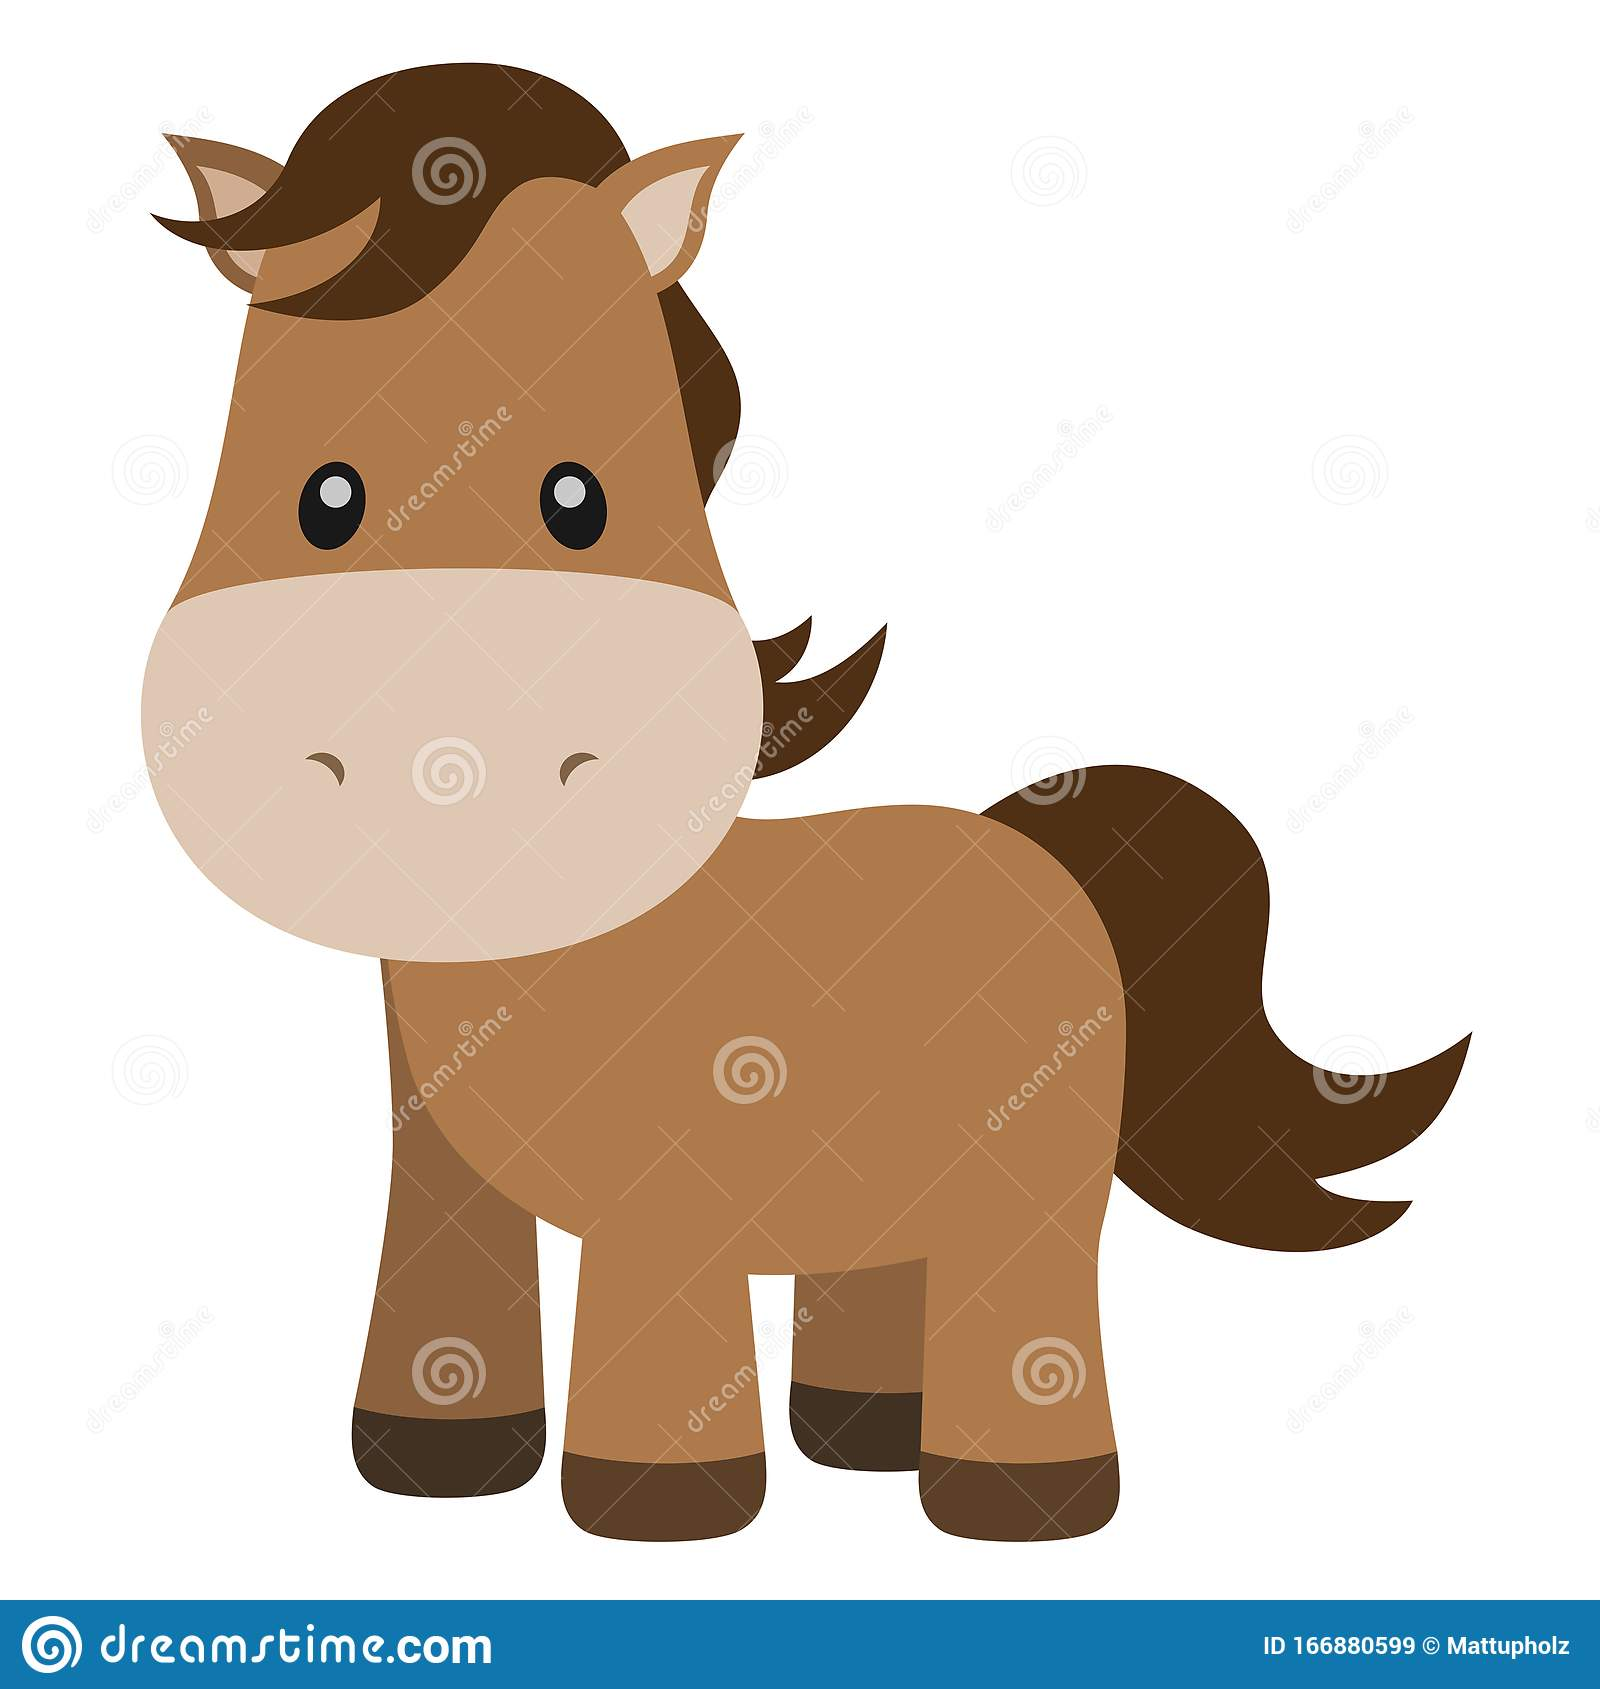 Cute Horse Cartoon Illustration On White Stock Vector Illustration Of Drawing Isolated 166880599